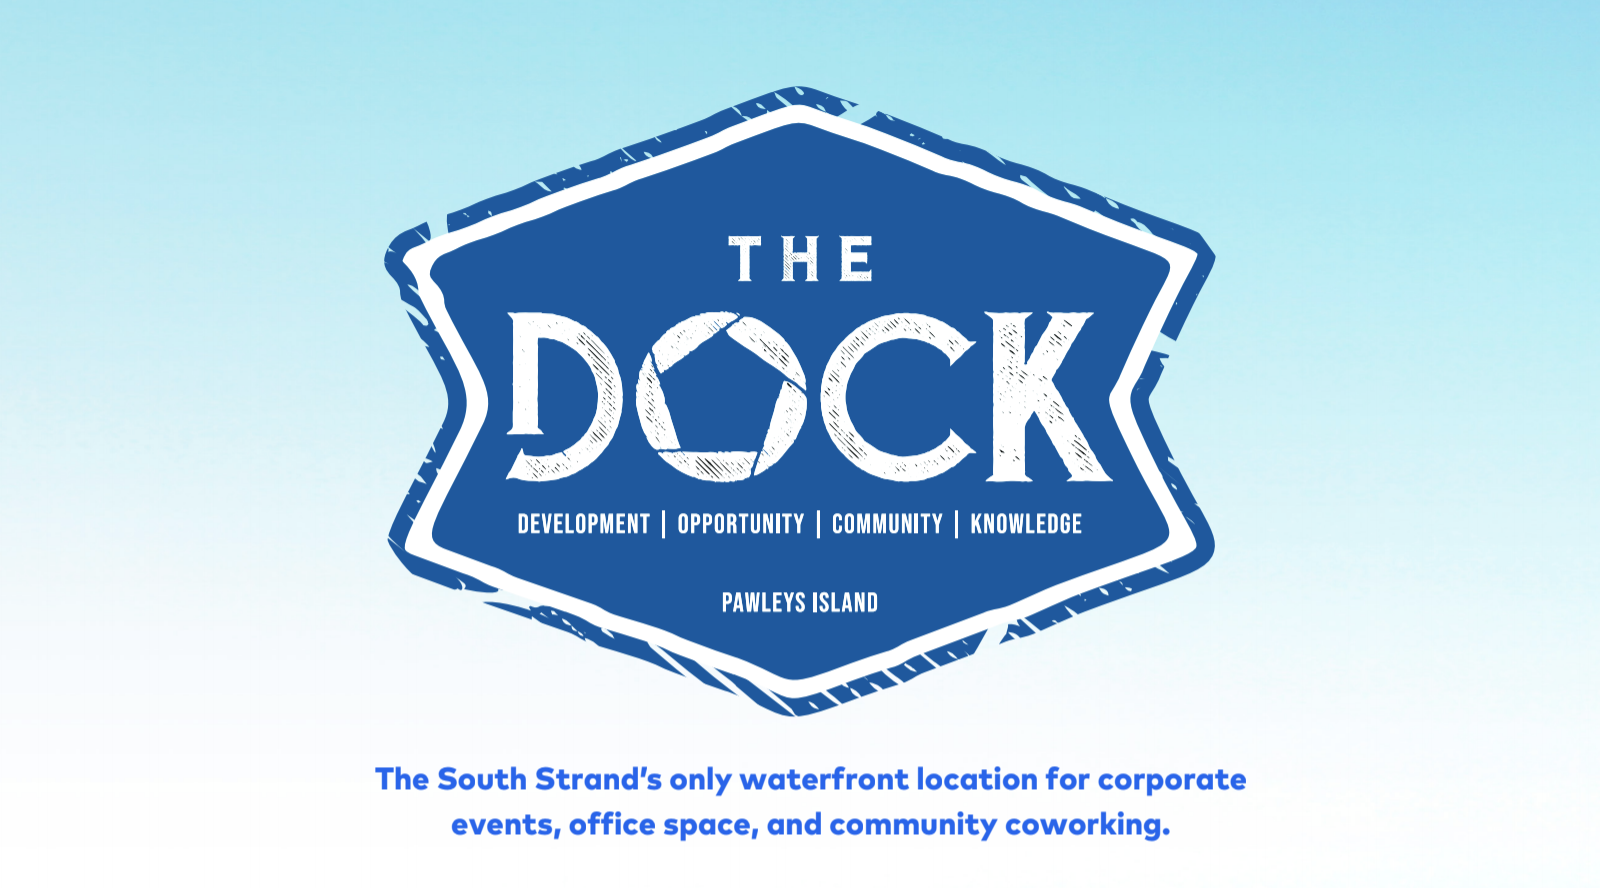 The DOCK Project